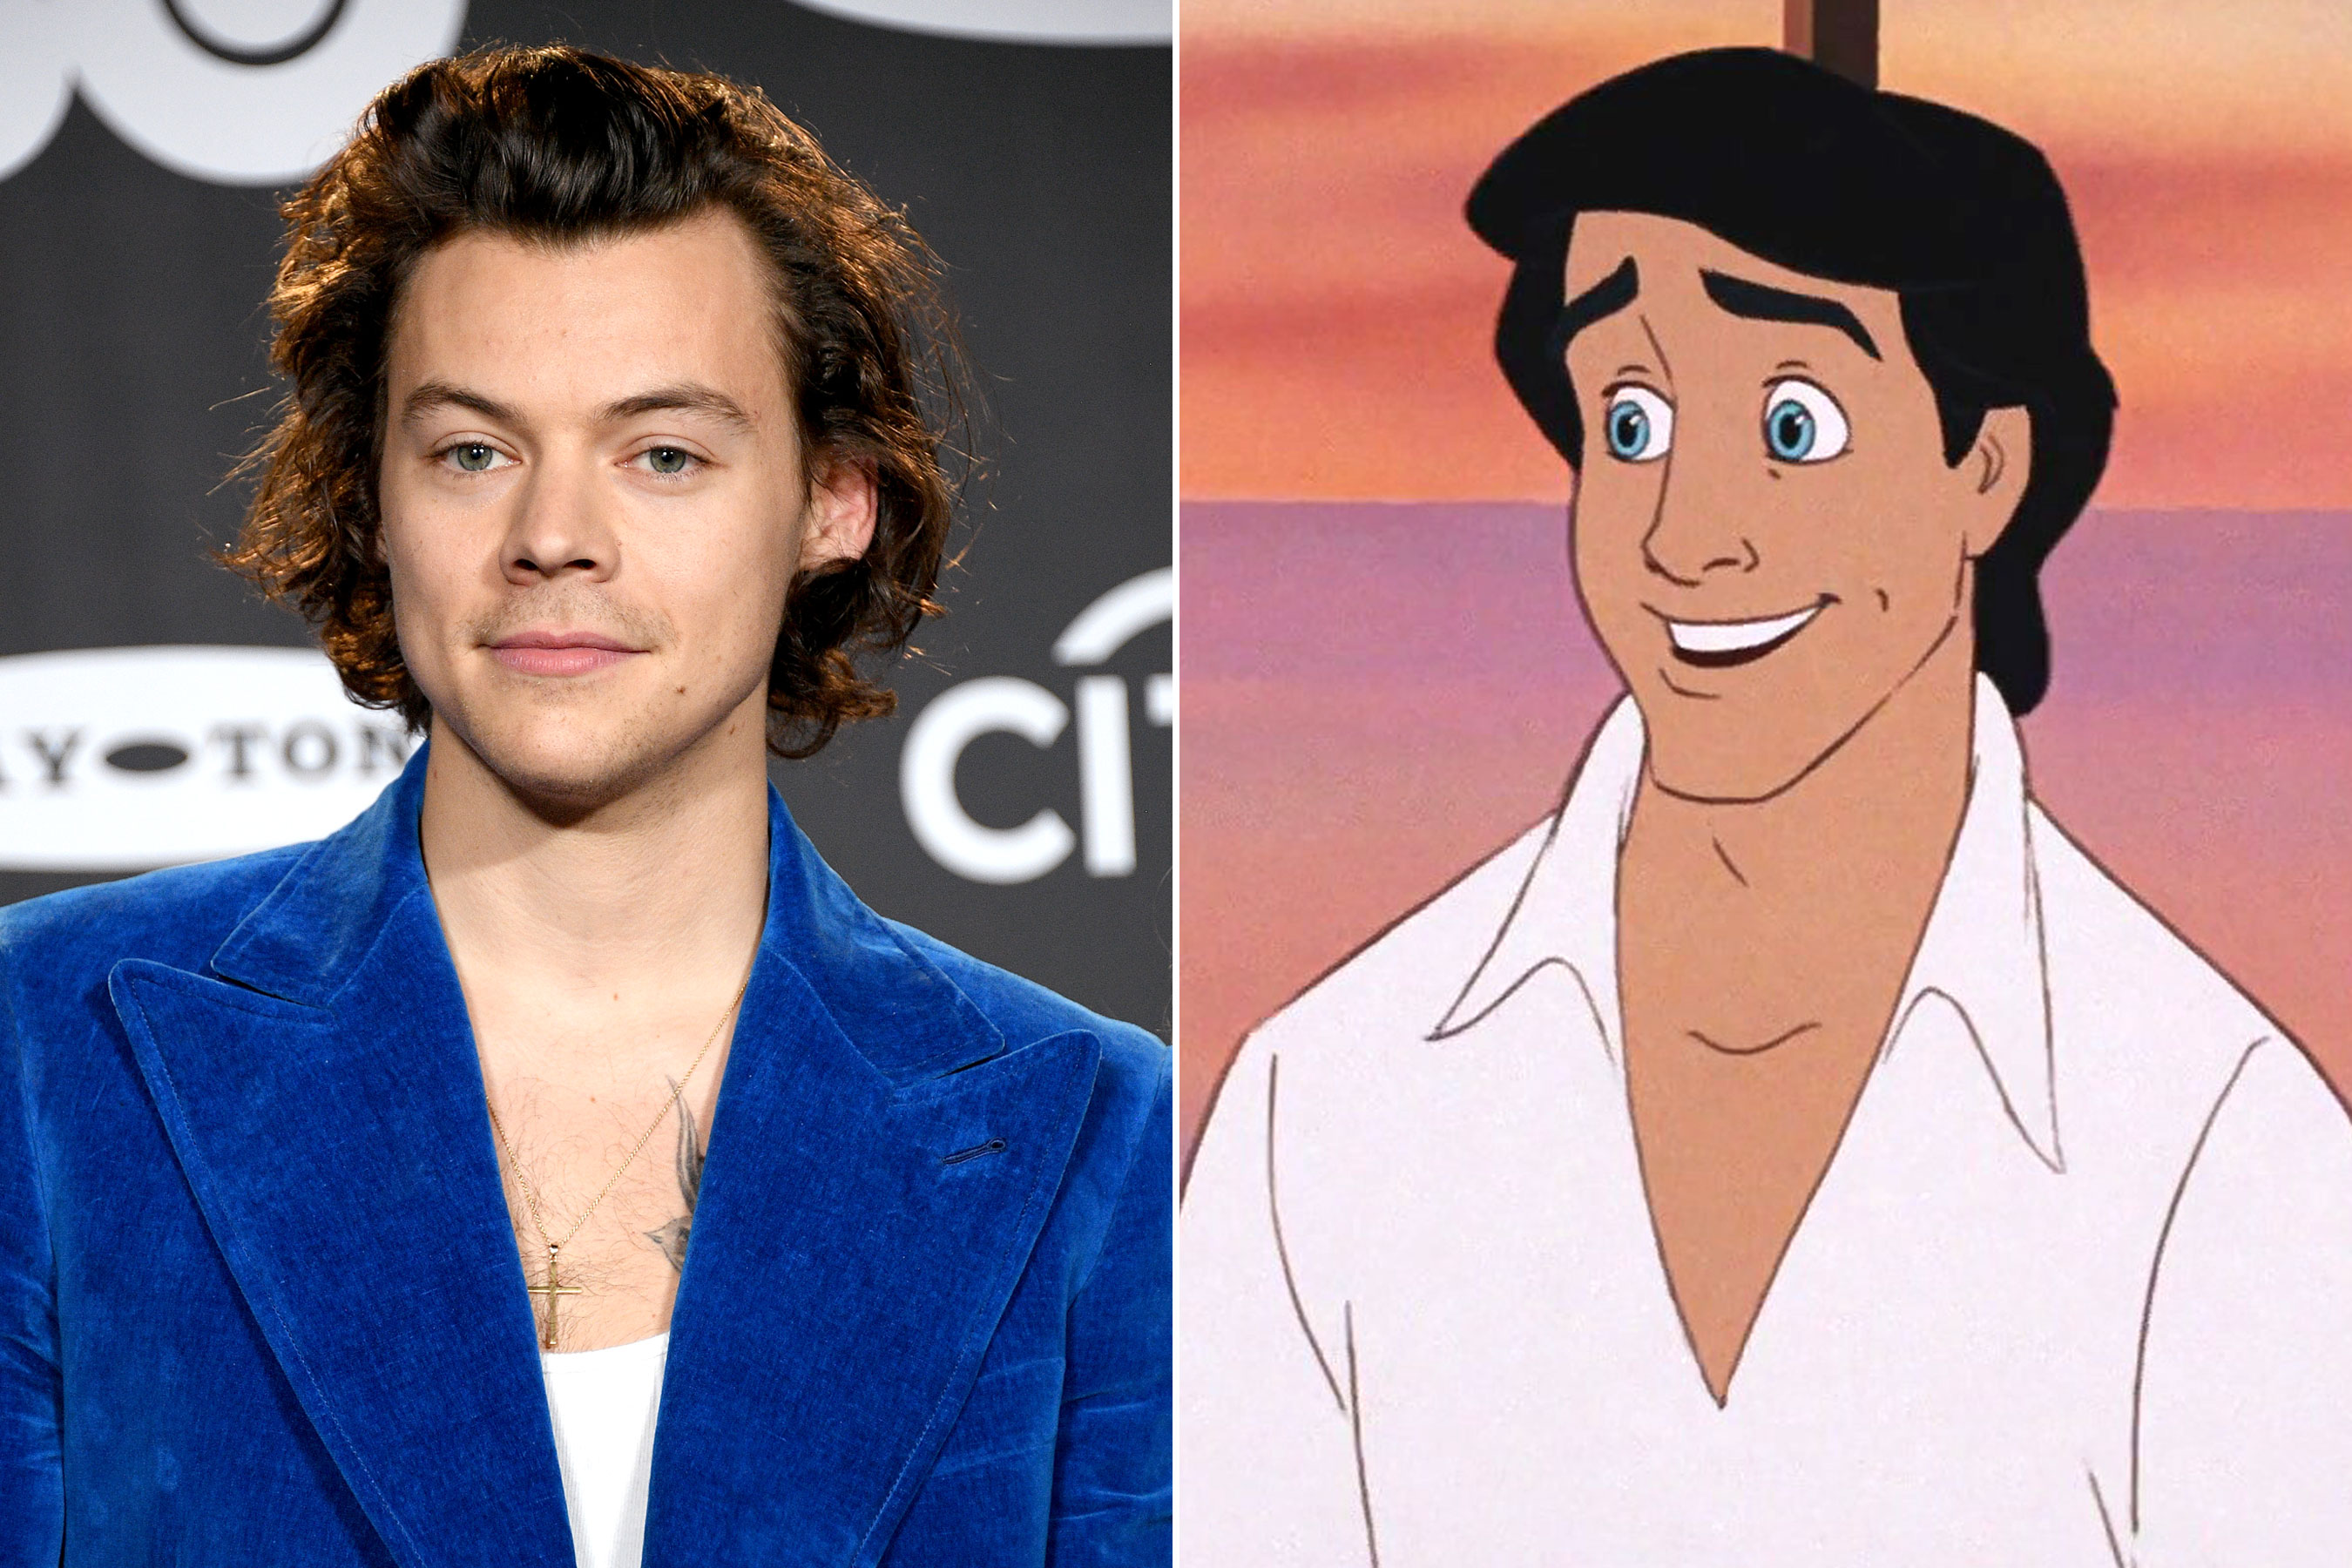 Harry Styles and Prince Eric from the Little Mermaid